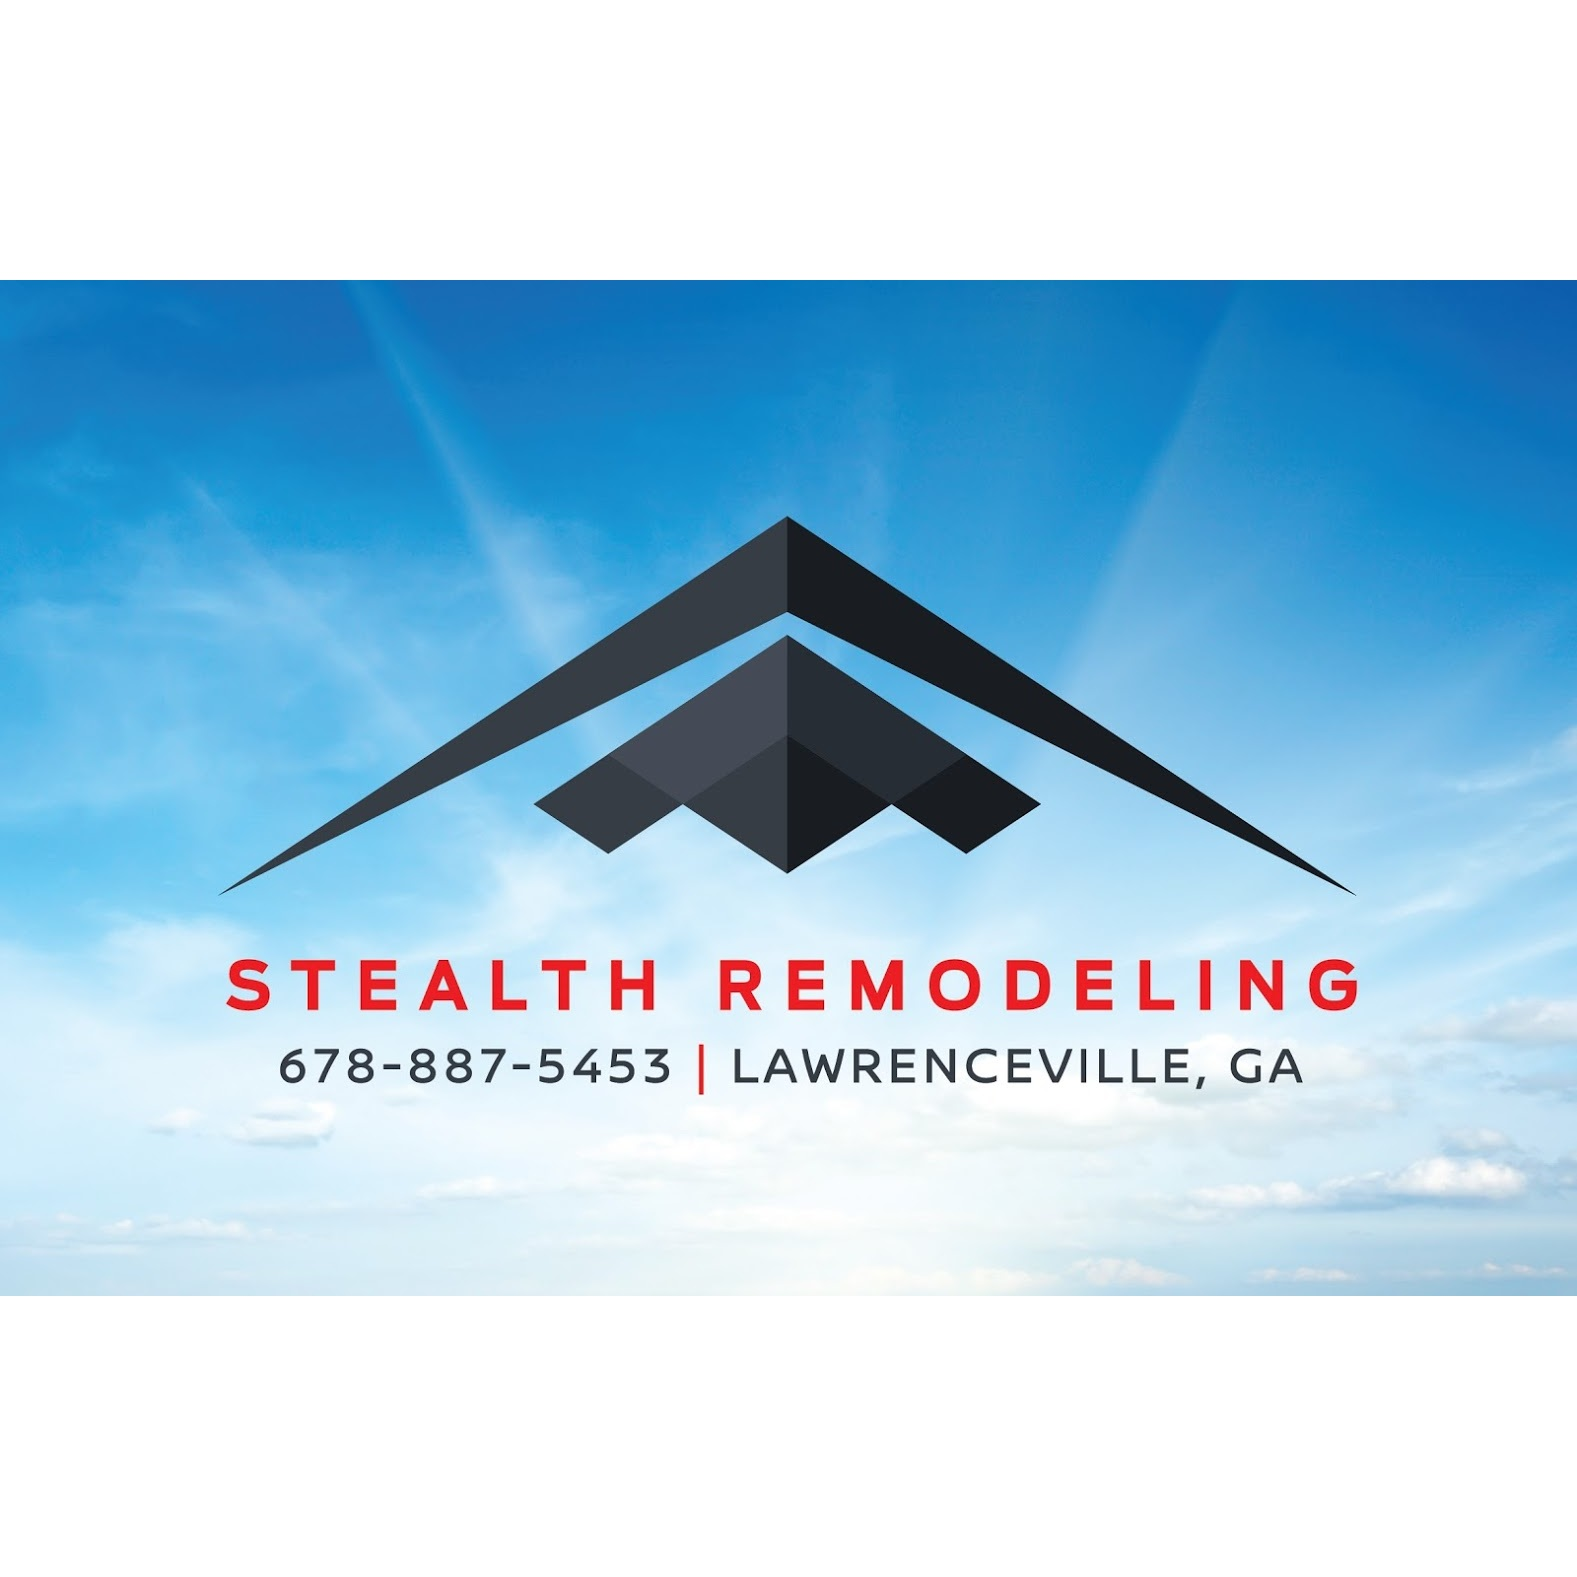 Stealth Remodeling Services